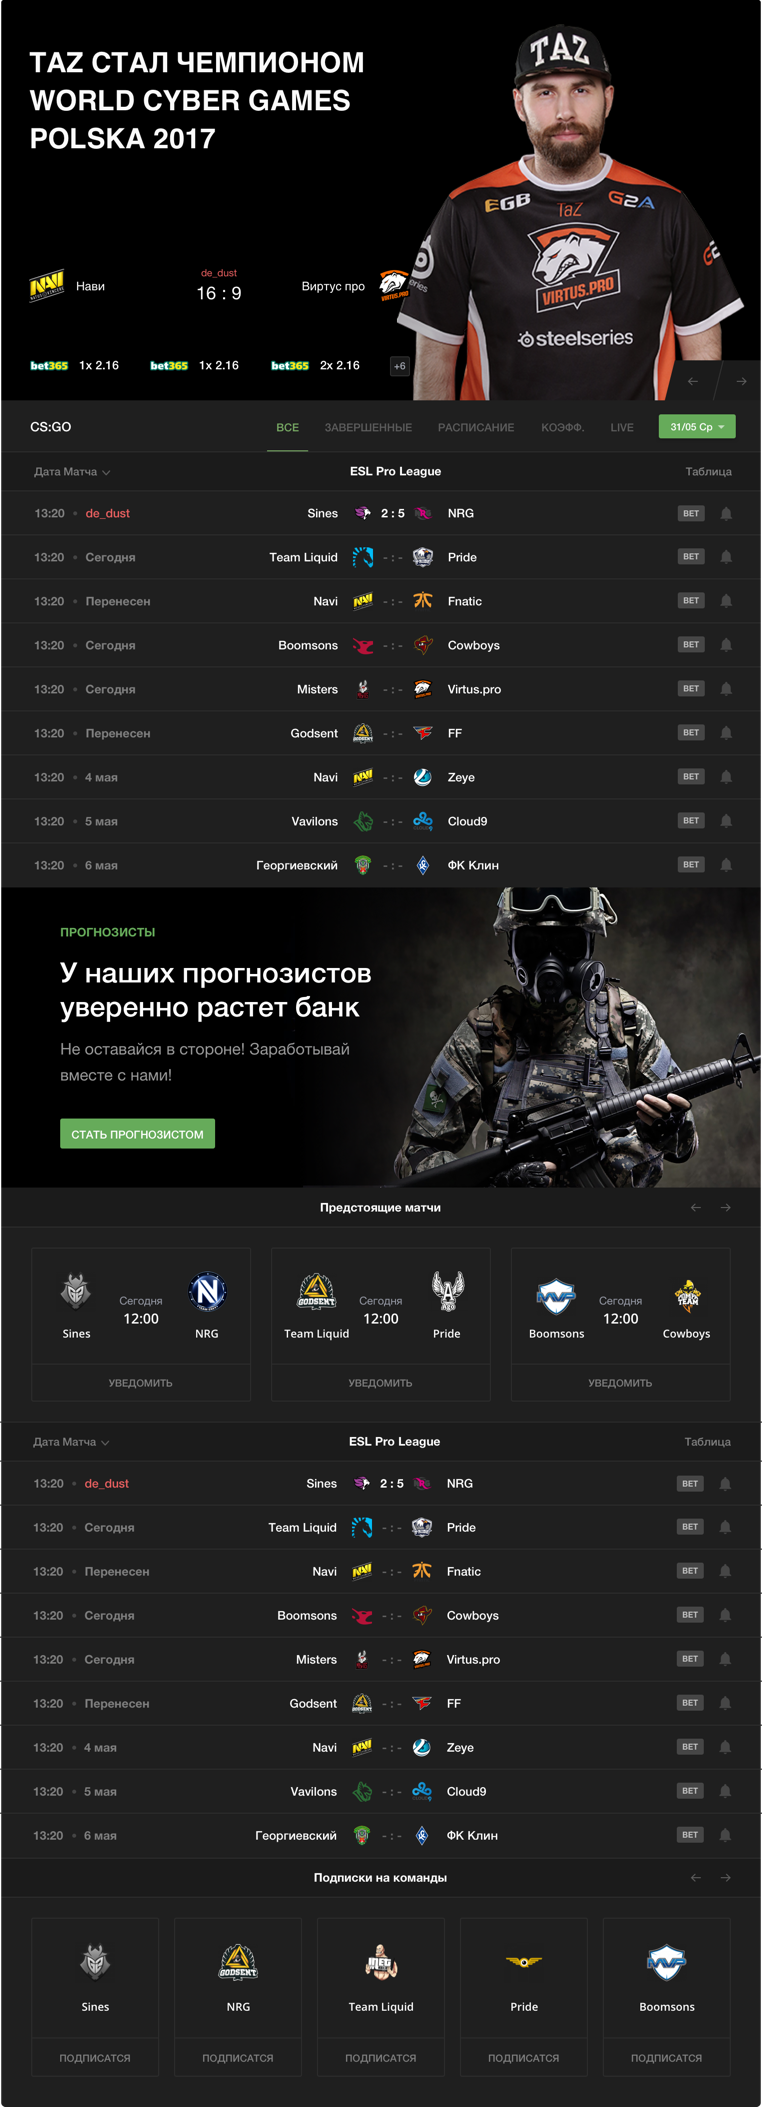 Cyber main page